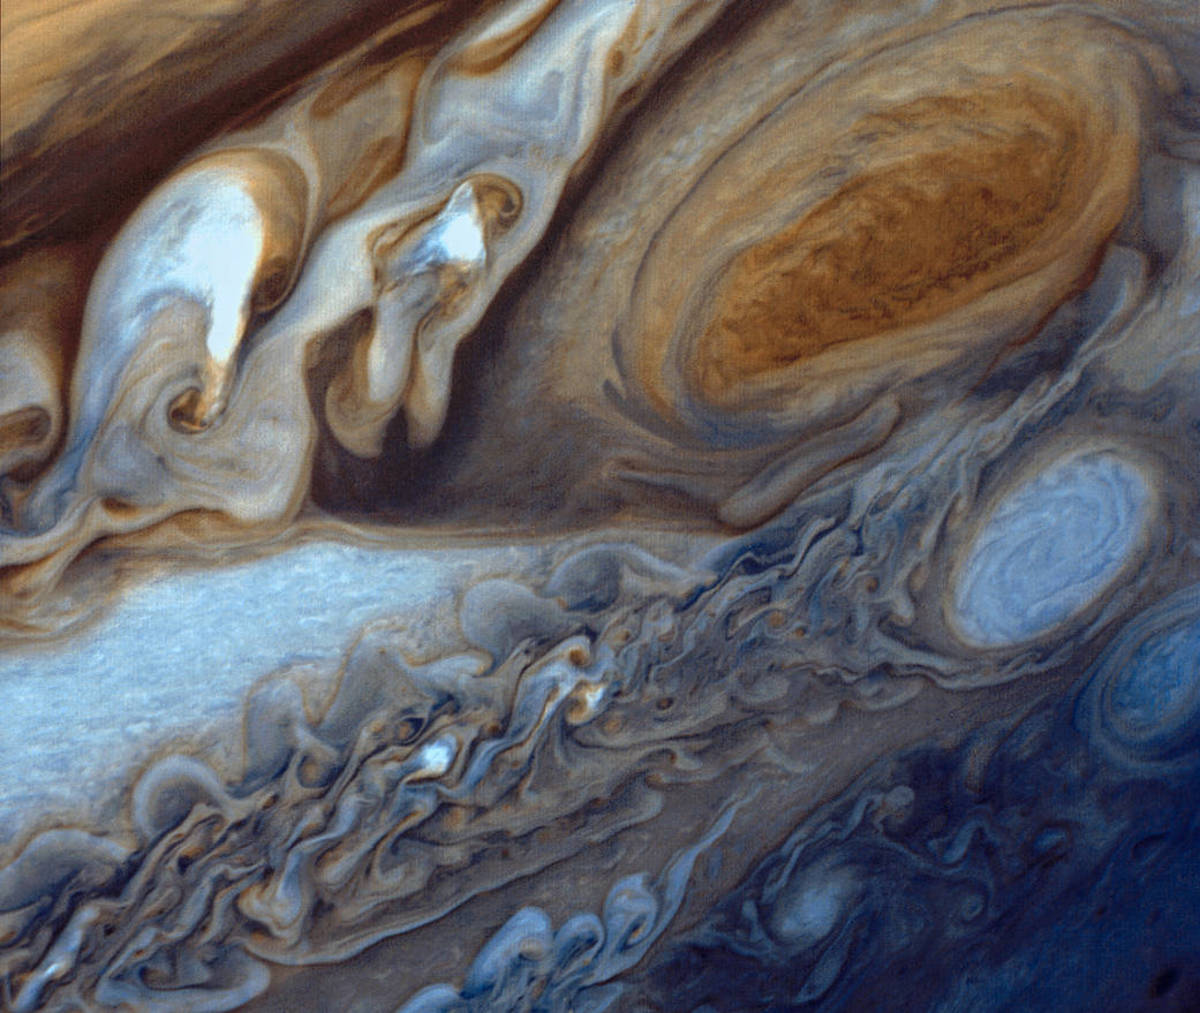 Early in 1979, NASA's Voyager 1 spacecraft zoomed toward Jupiter, capturing hundreds of images during its approach, including this close-up of swirling clouds around Jupiter's Great Red Spot.